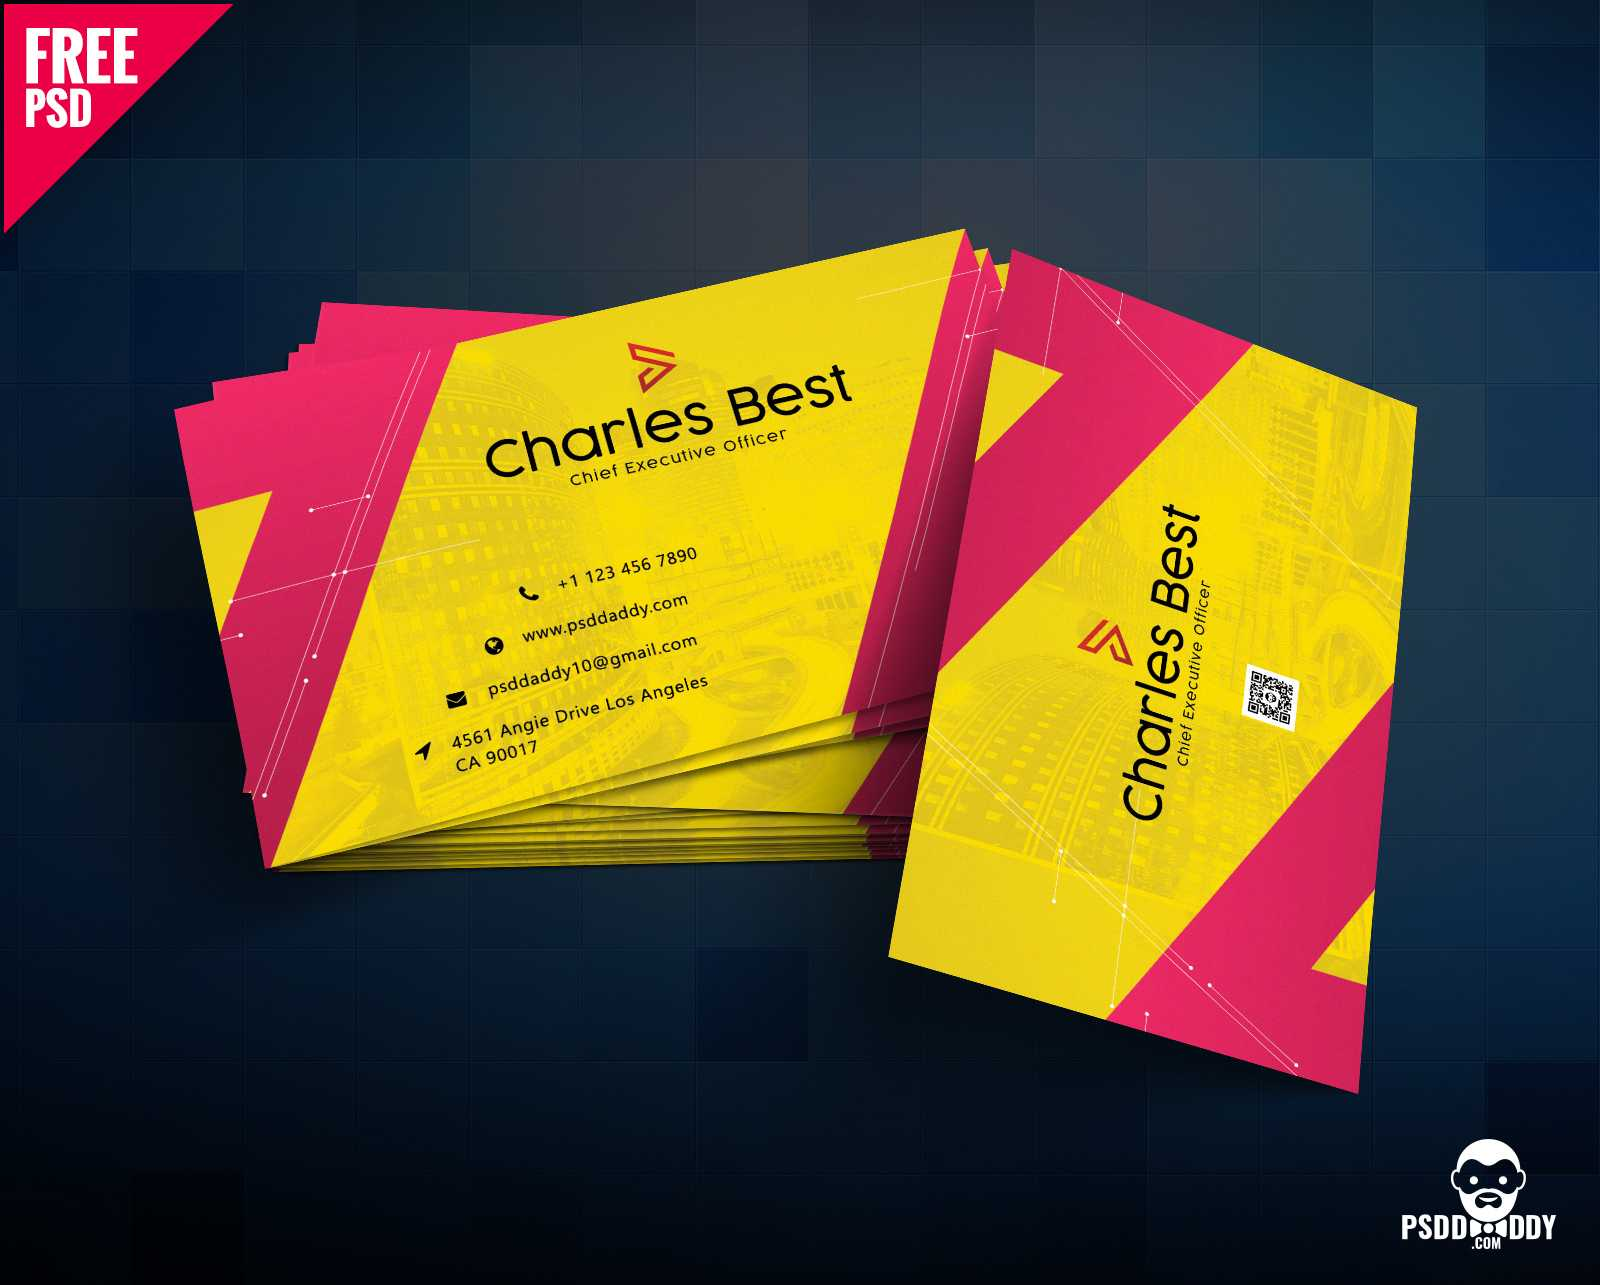 Download] Creative Business Card Free Psd | Psddaddy In Visiting Card Template Psd Free Download